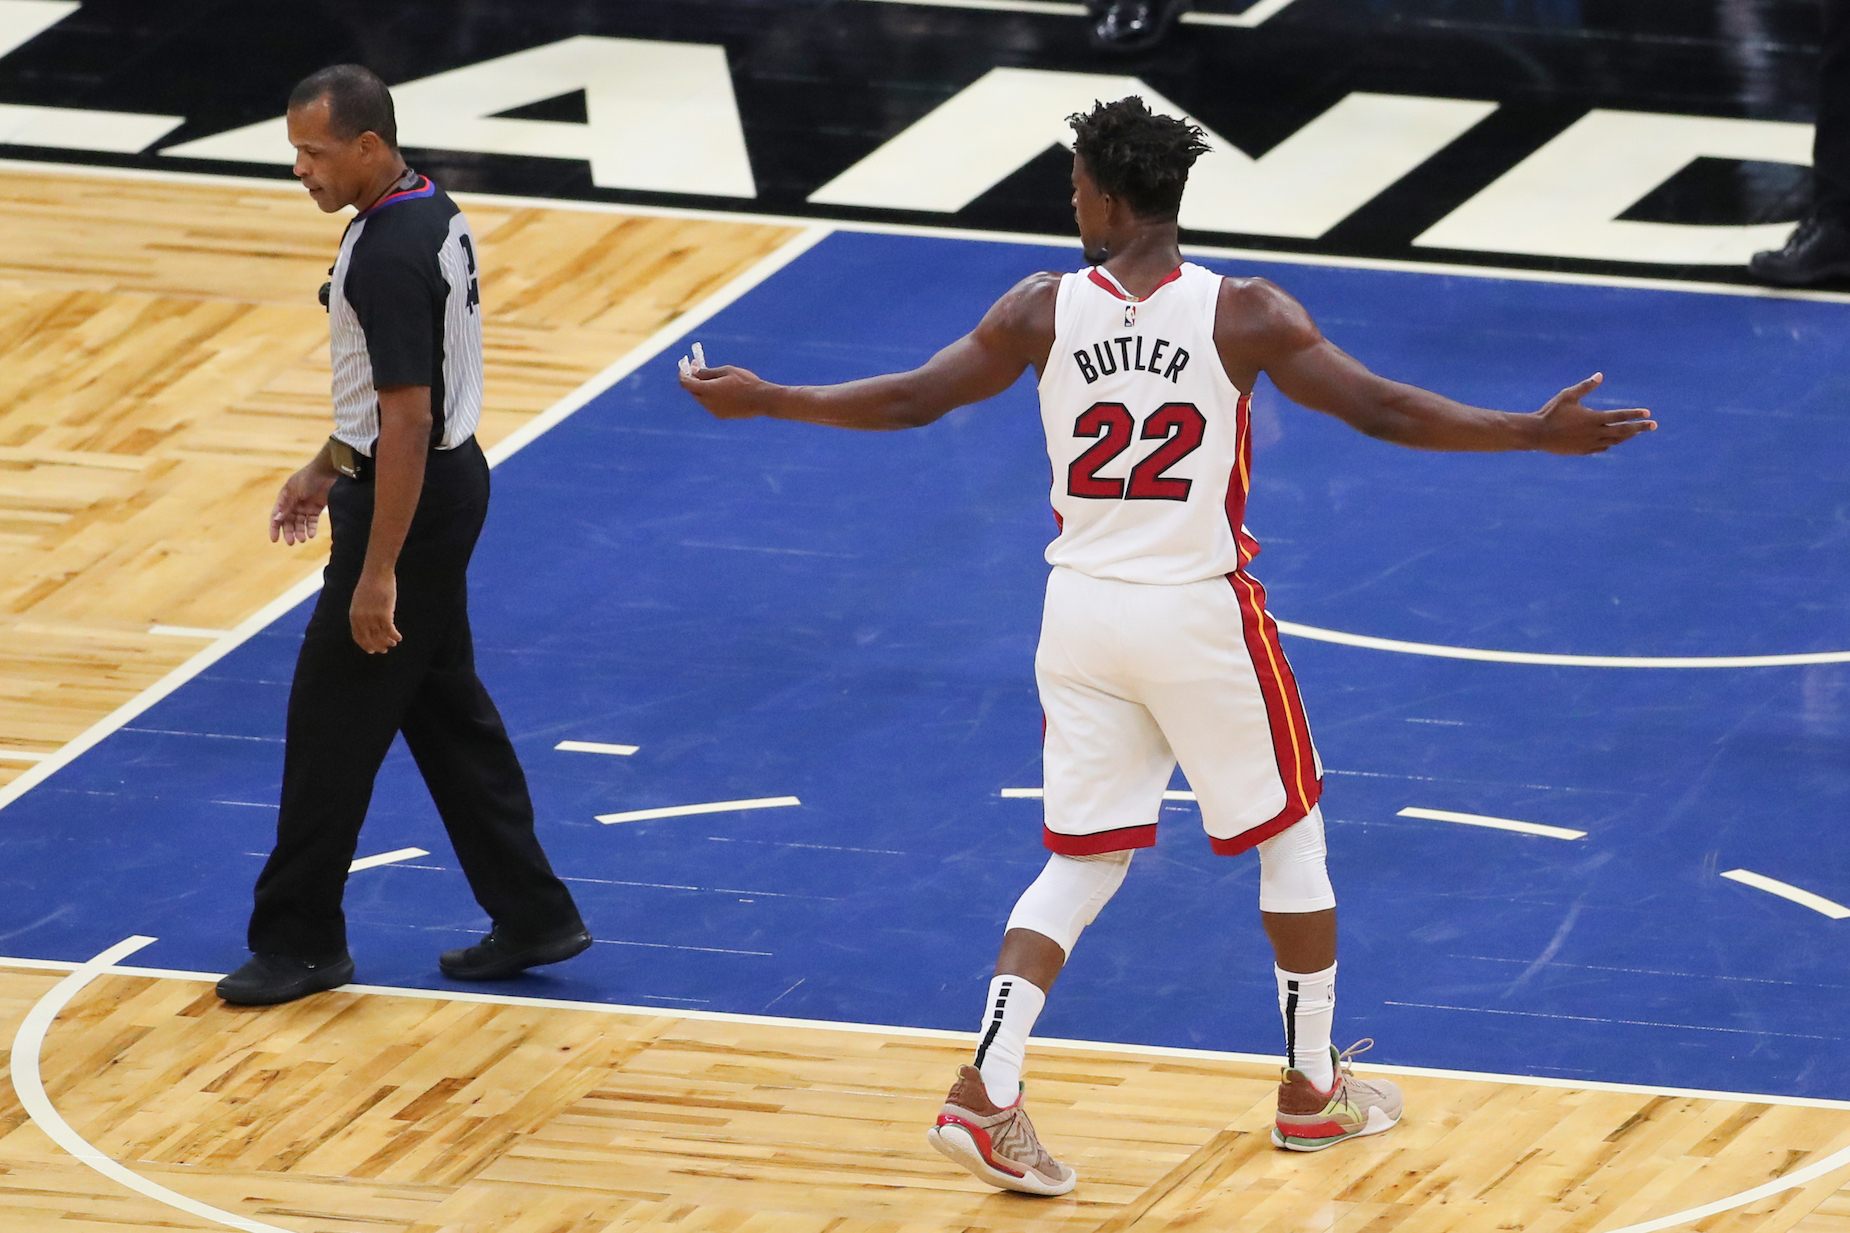 Jimmy Butler won't be playing for the Miami Heat when they meet the Milwaukee Bucks on Tuesday.